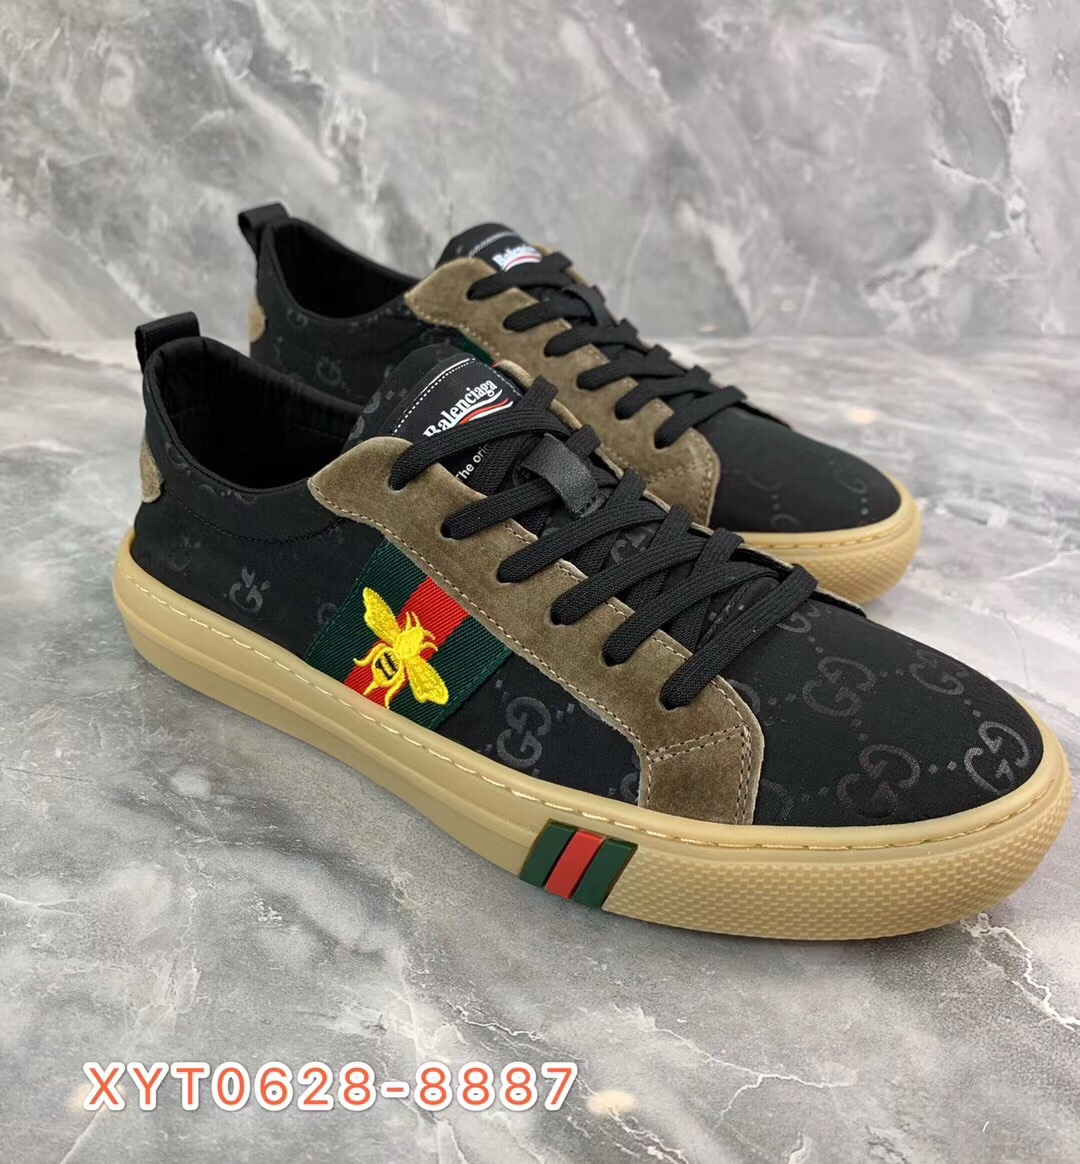 [pictures of West Asia] 20 years of new cloth shoes, fashionable shoes, casual shoes, versatile shoes